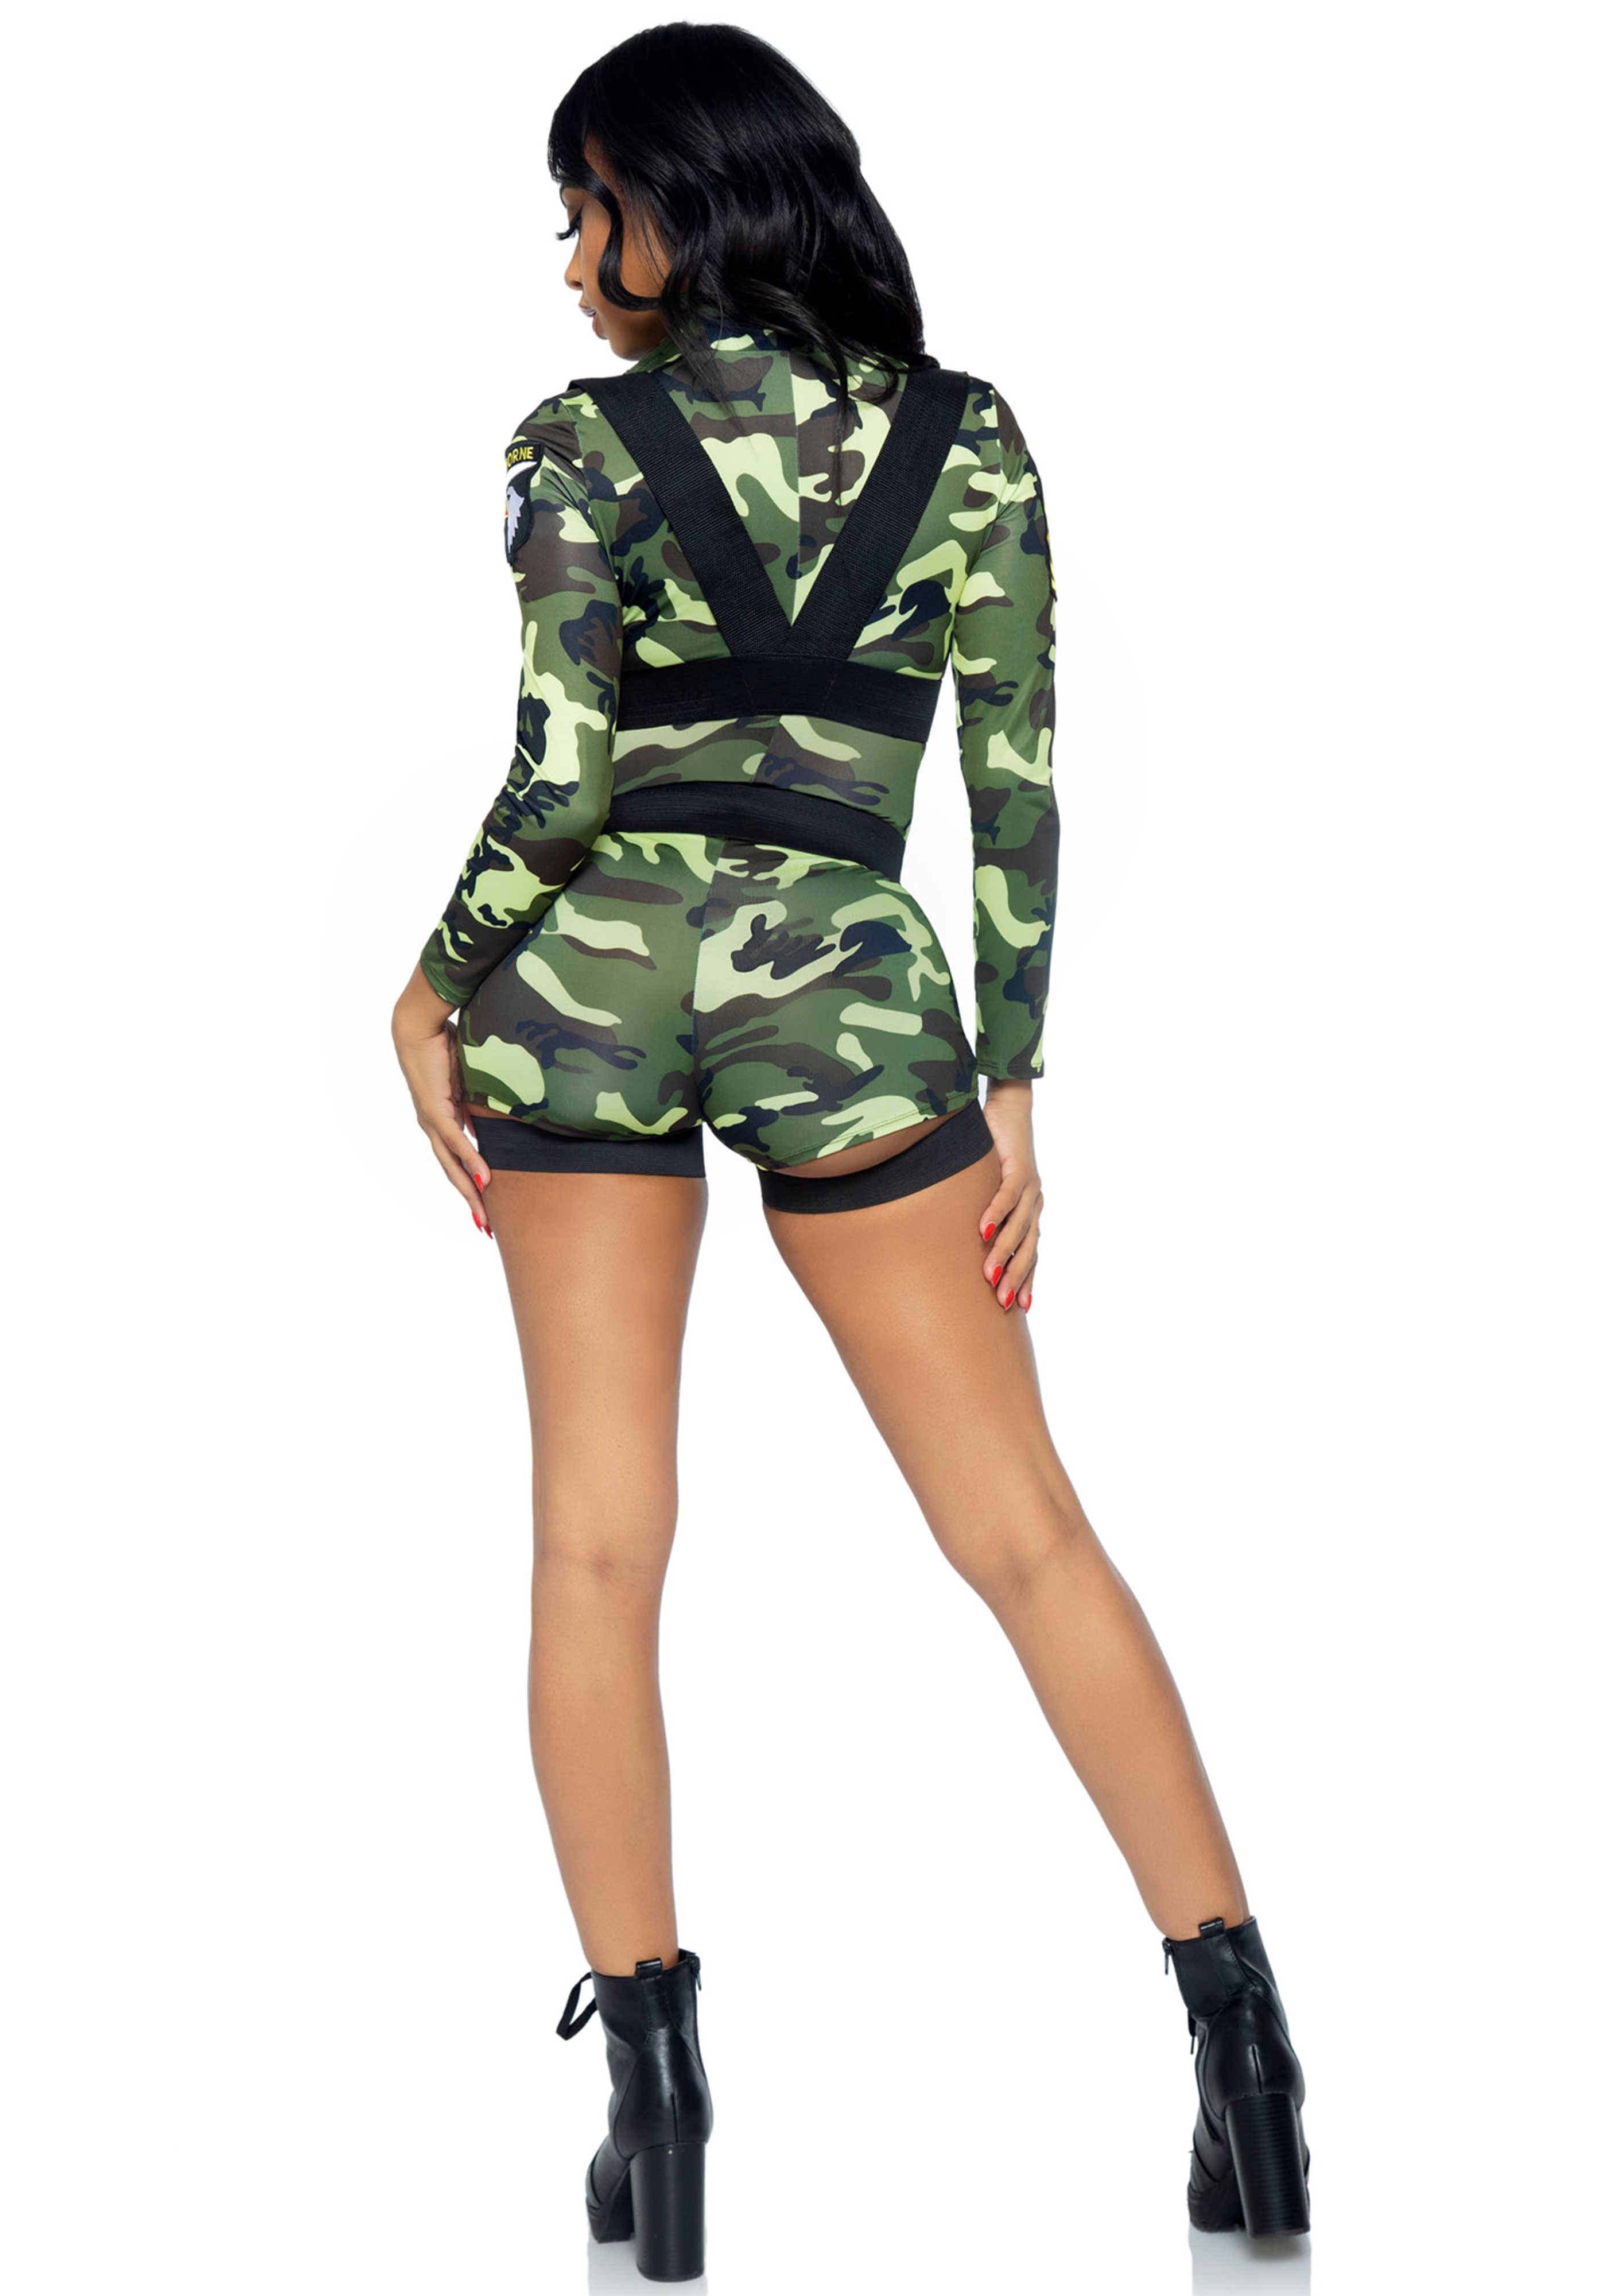 This 'Goin' Commando' costume is only for tough girls! The set includes a zipper front spandex romper and body harness. This costume runs small. when in doubt, we recommend to go one size up.